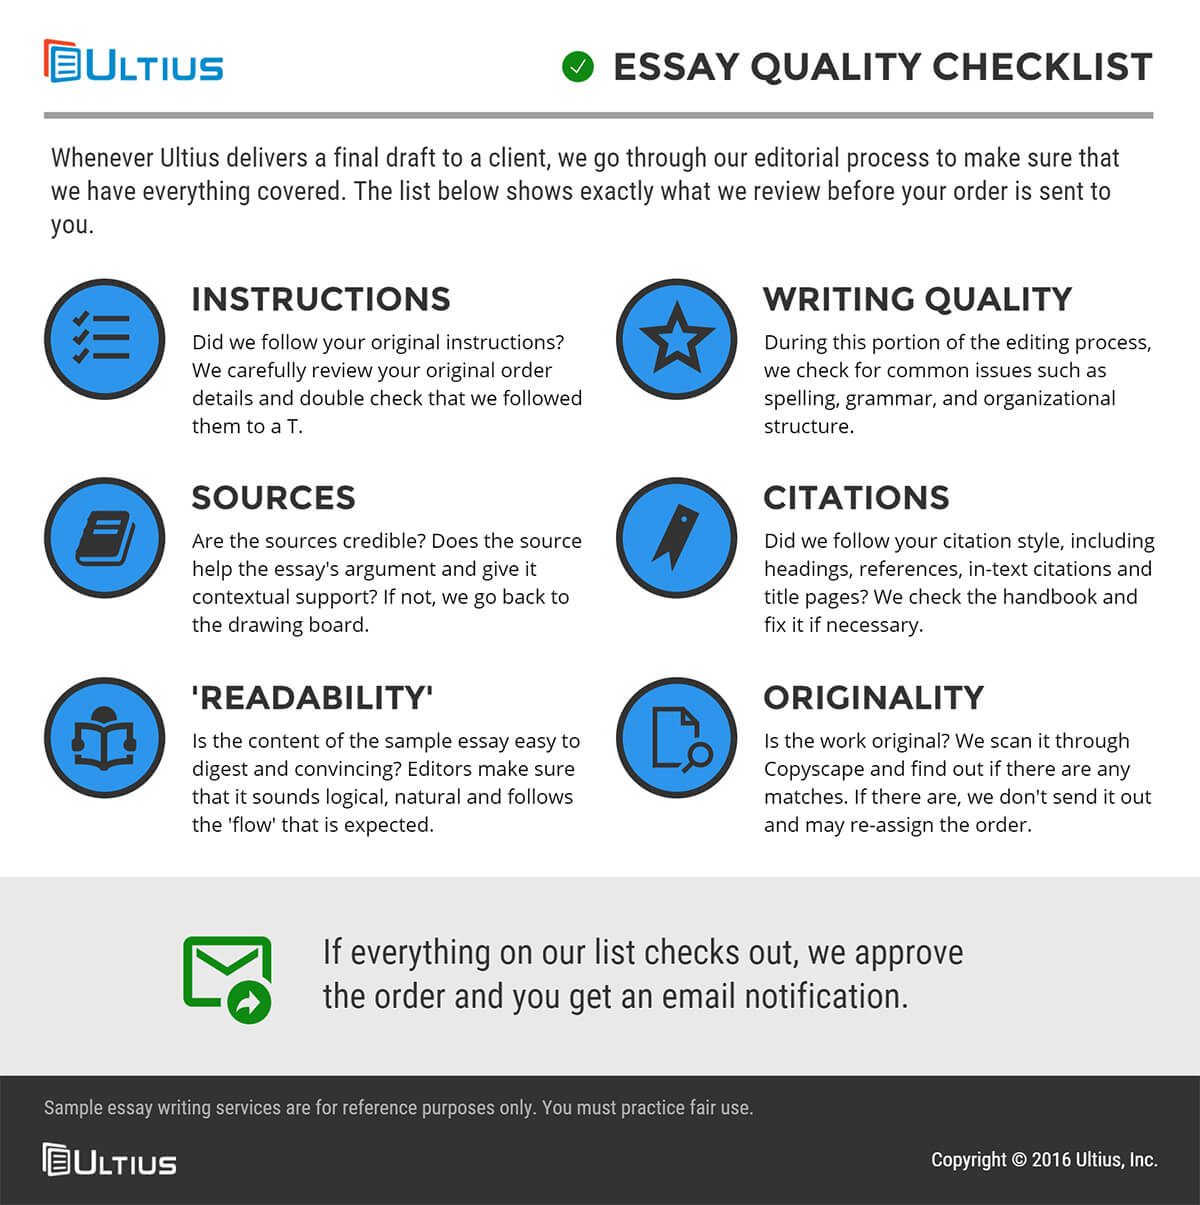 003 Essay Quality Checklist Buy Papers Magnificent Full